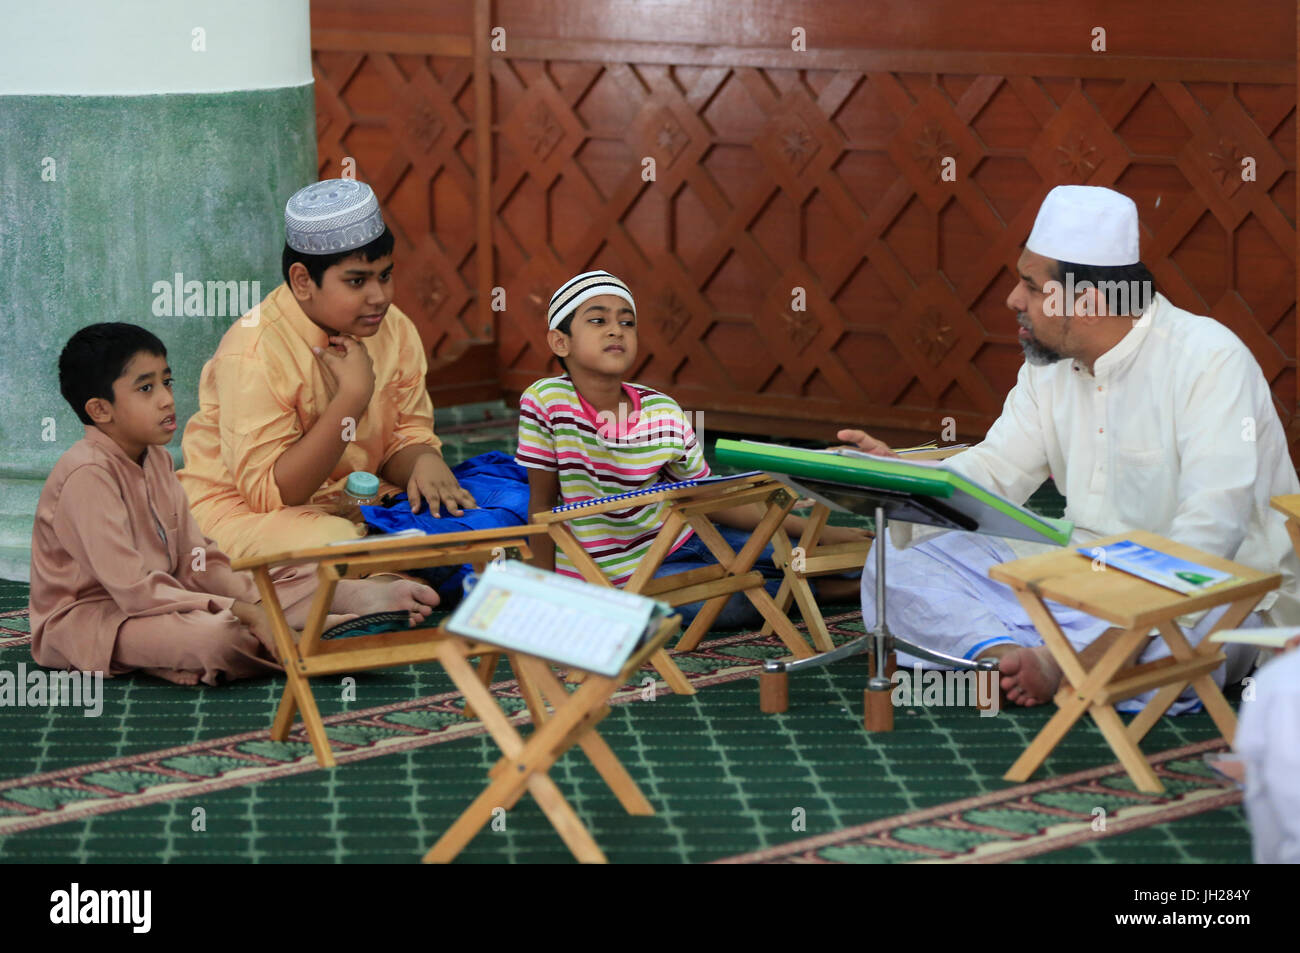 Masjid Jamae one of the earliest mosques in Singapore located in  Chinatown.  Koran classes for boys.  Singapore. - Stock Image